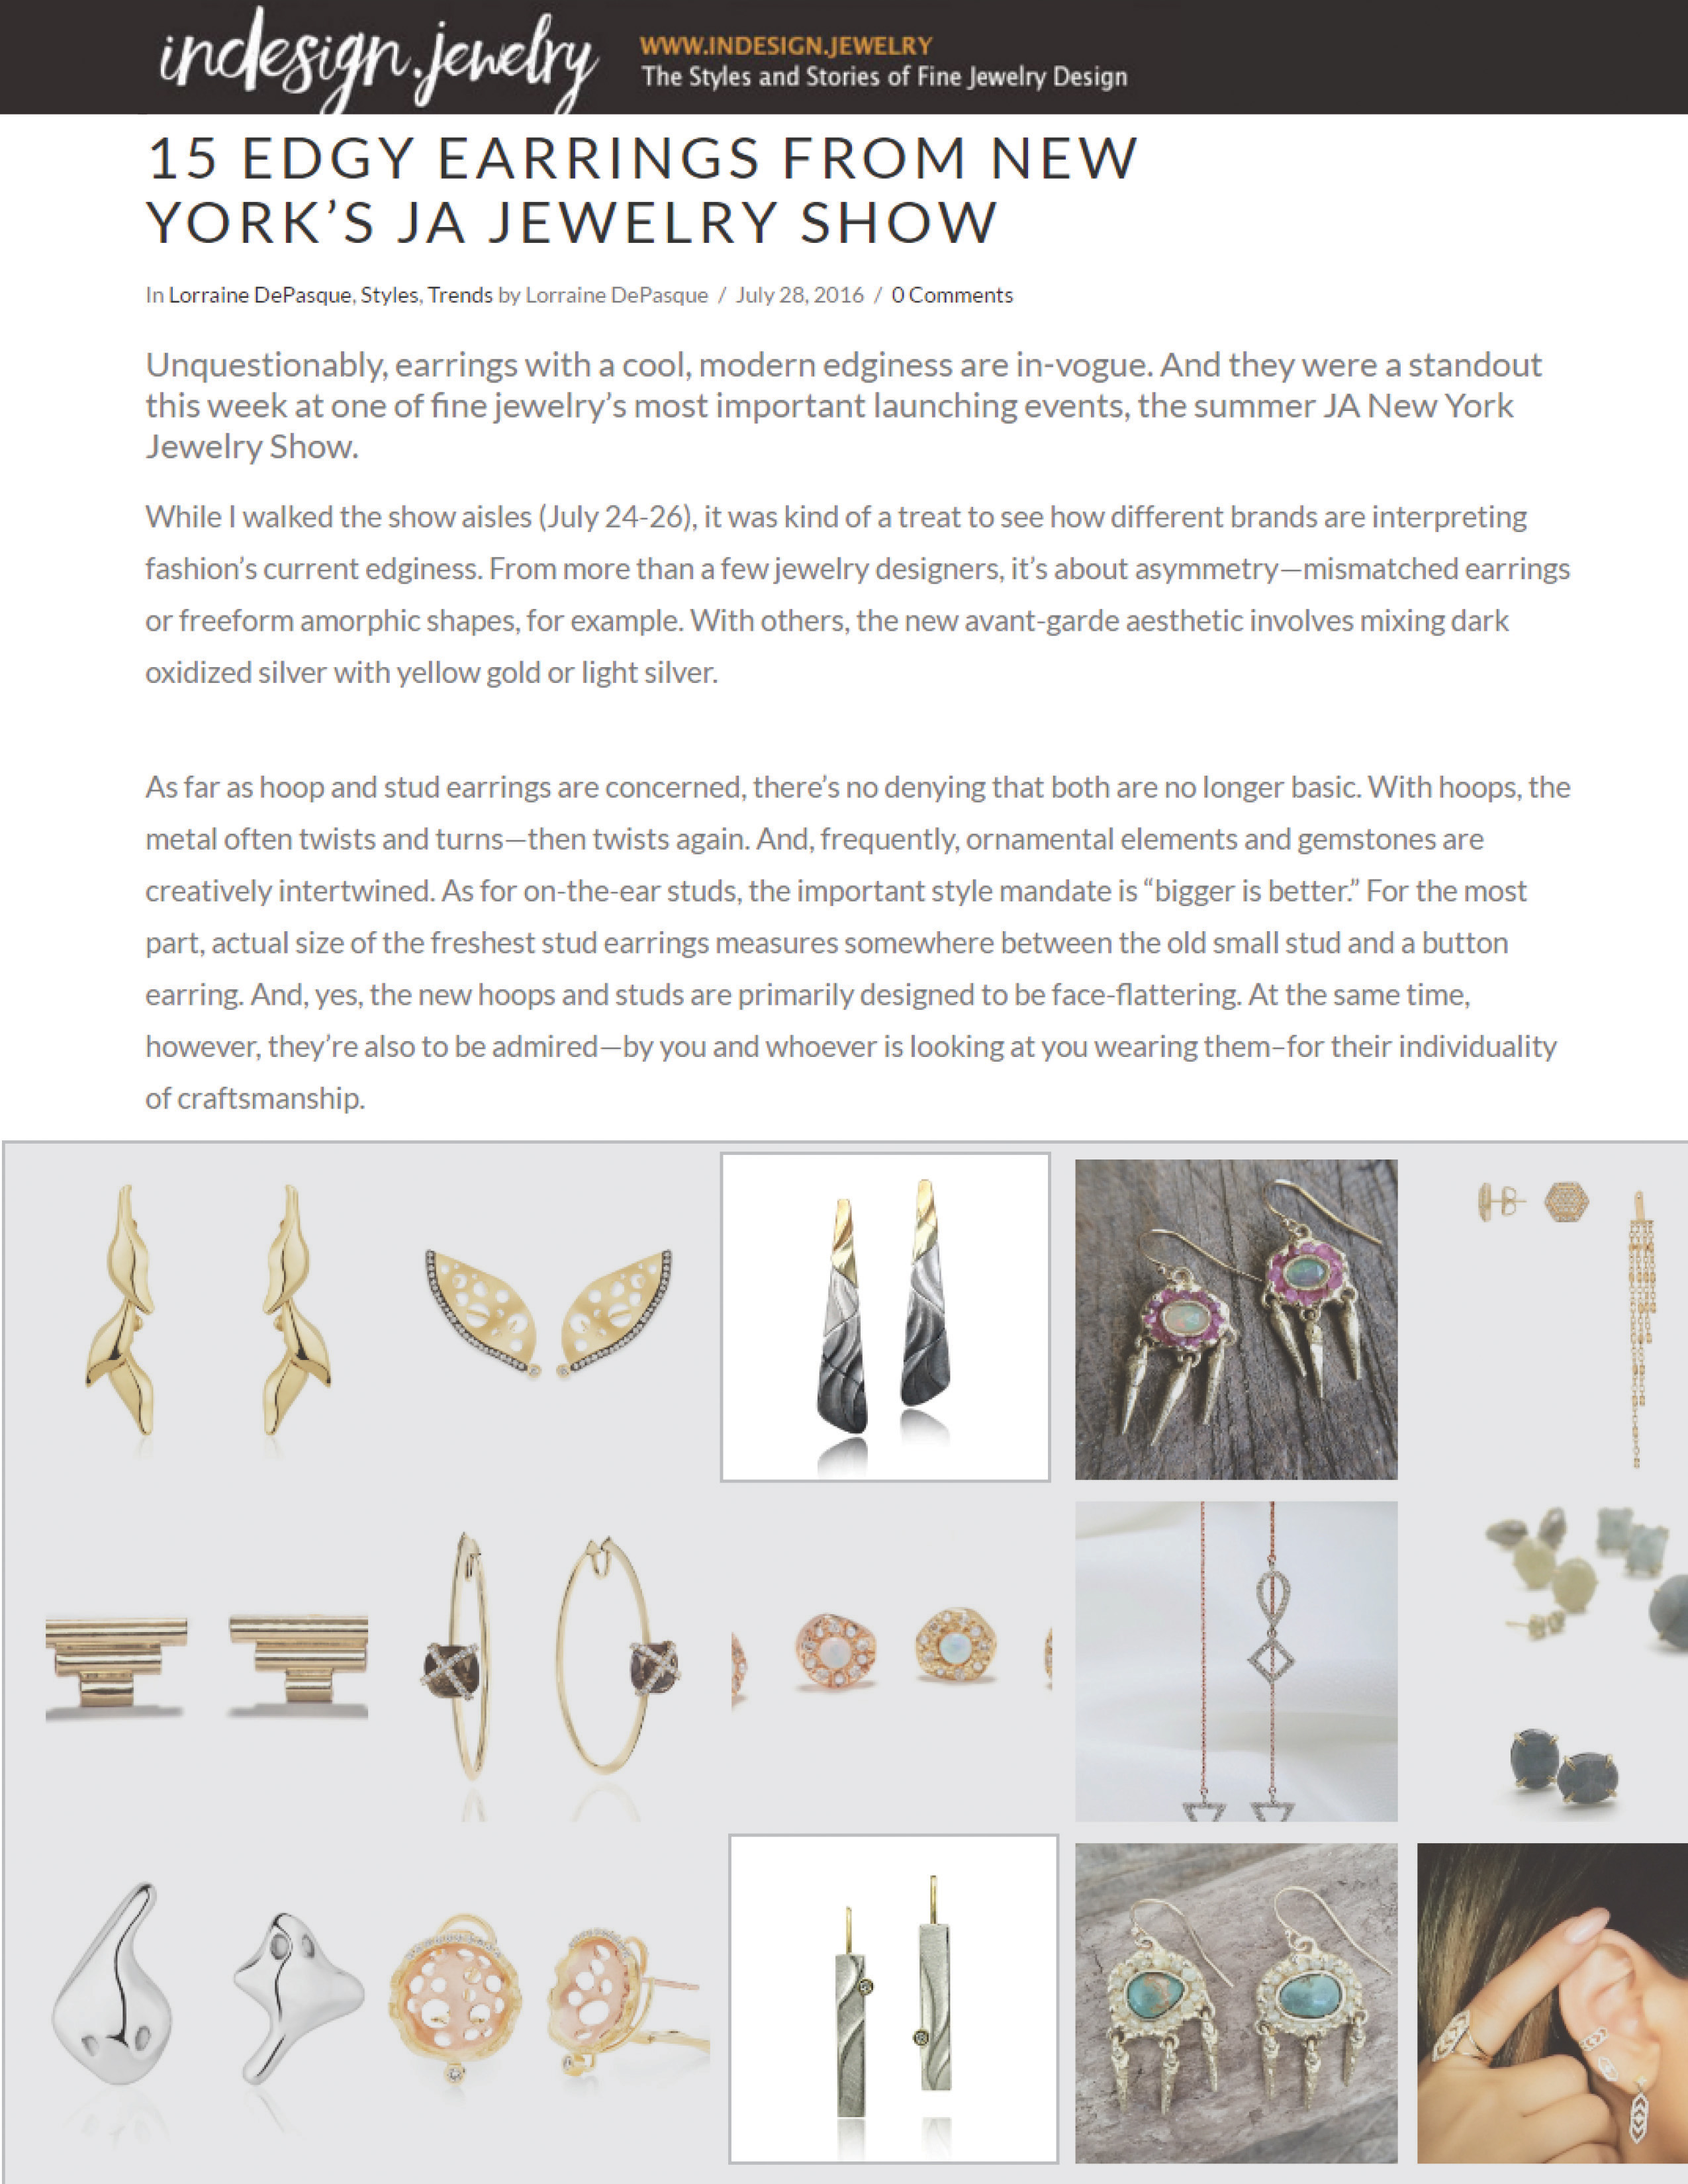 Ombre Earrings and Echo Dangle Earrings from K.Mita | instoremag.com Jul 2016